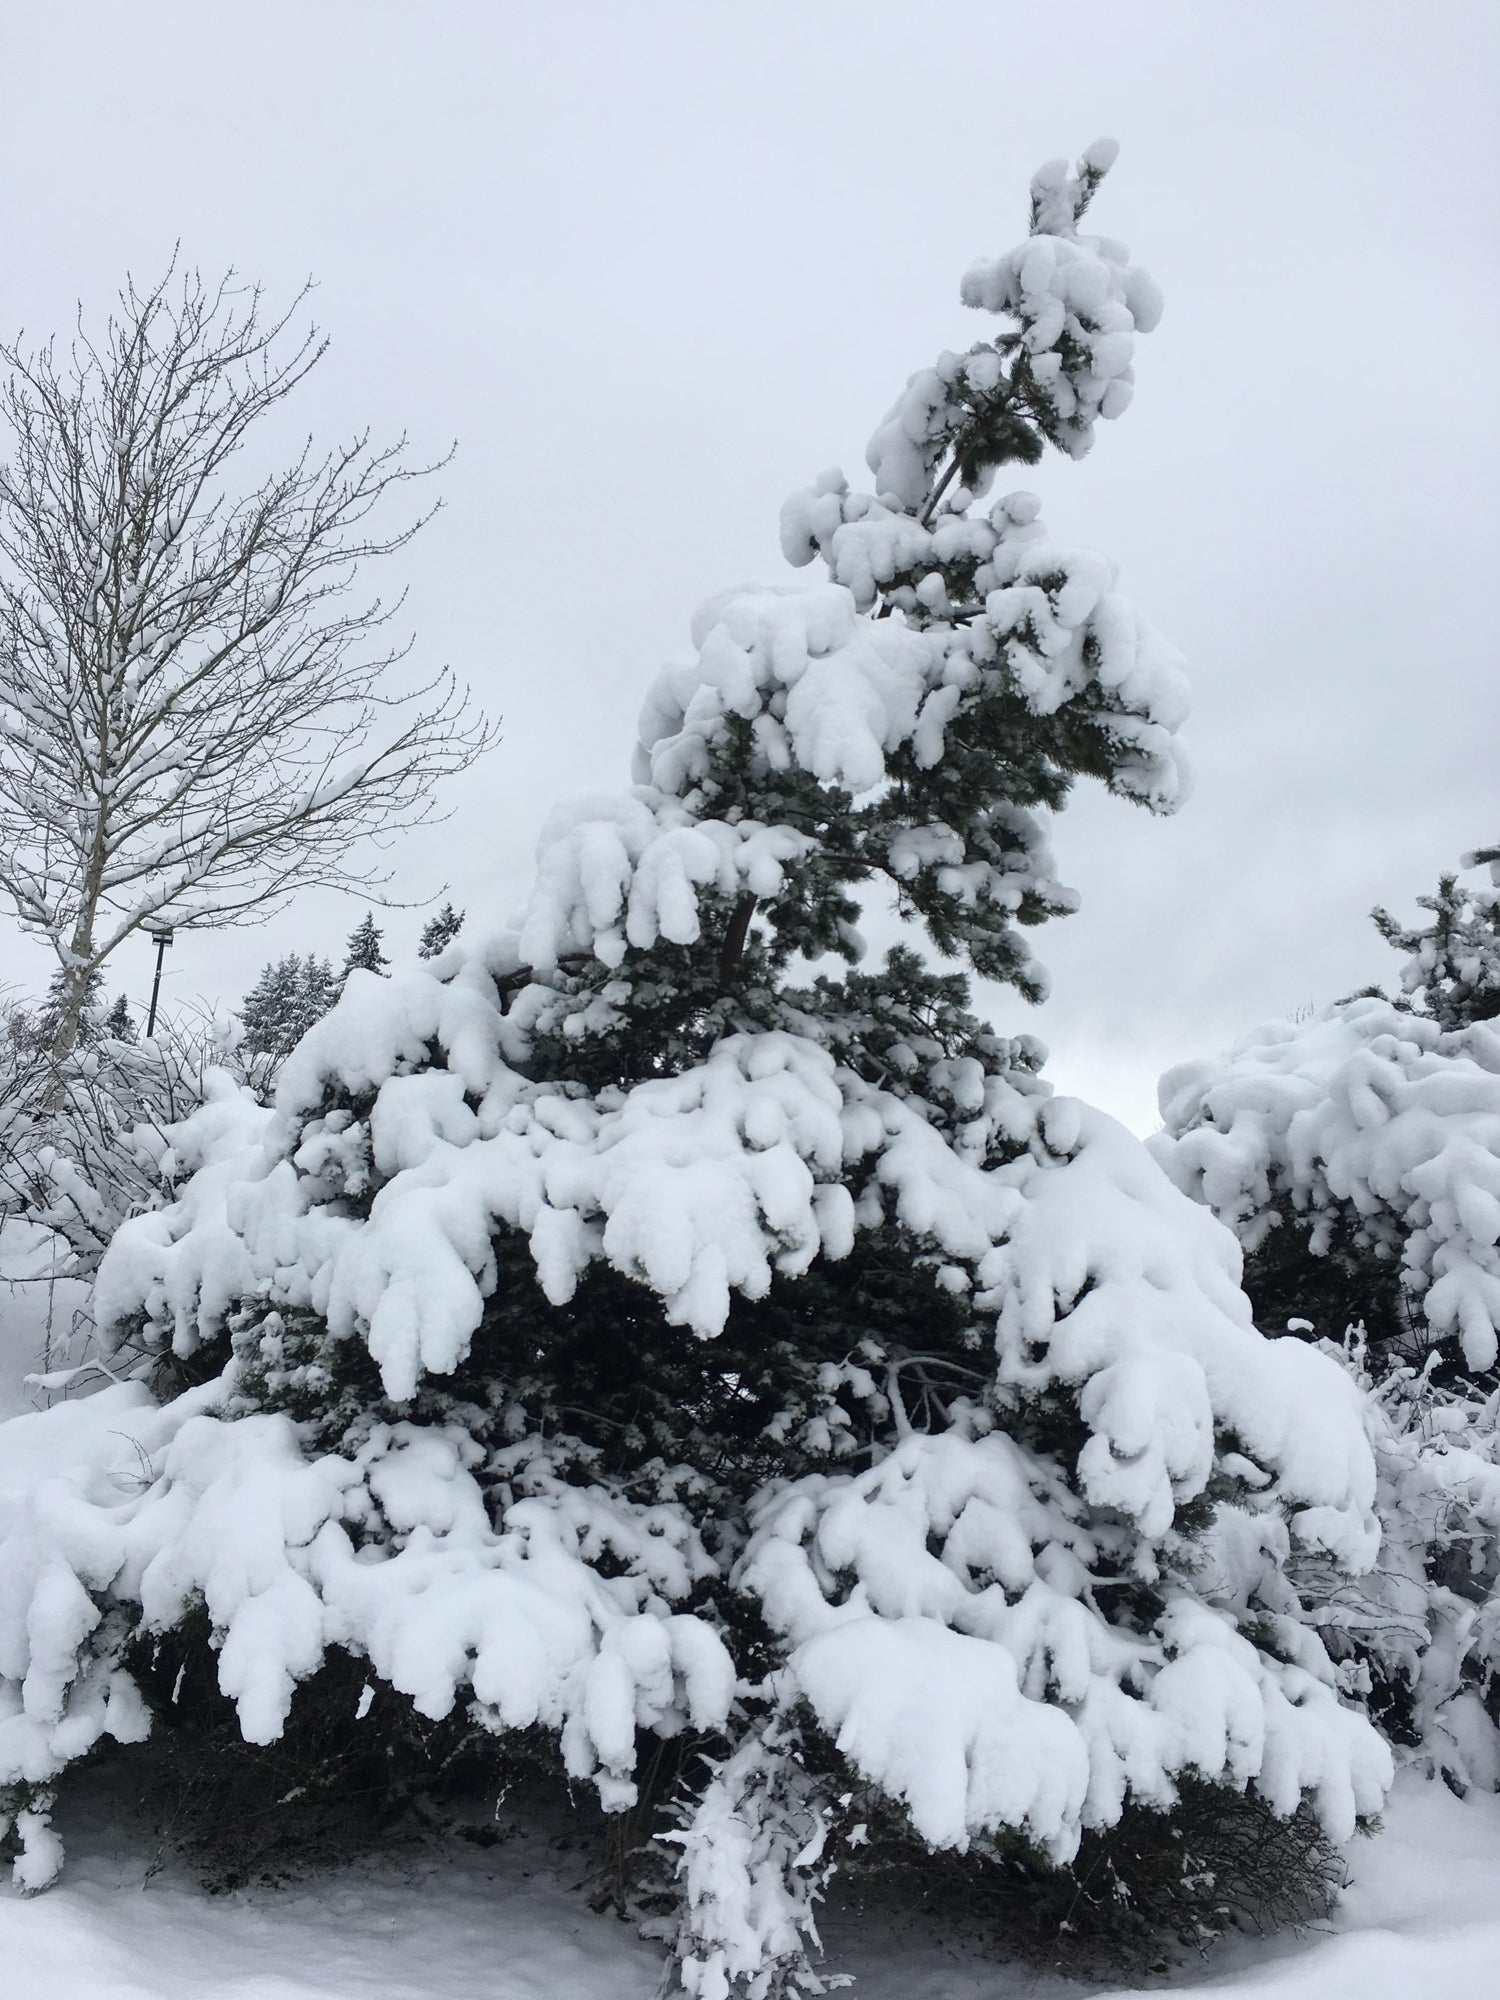 An evergreen weighed down by snow.